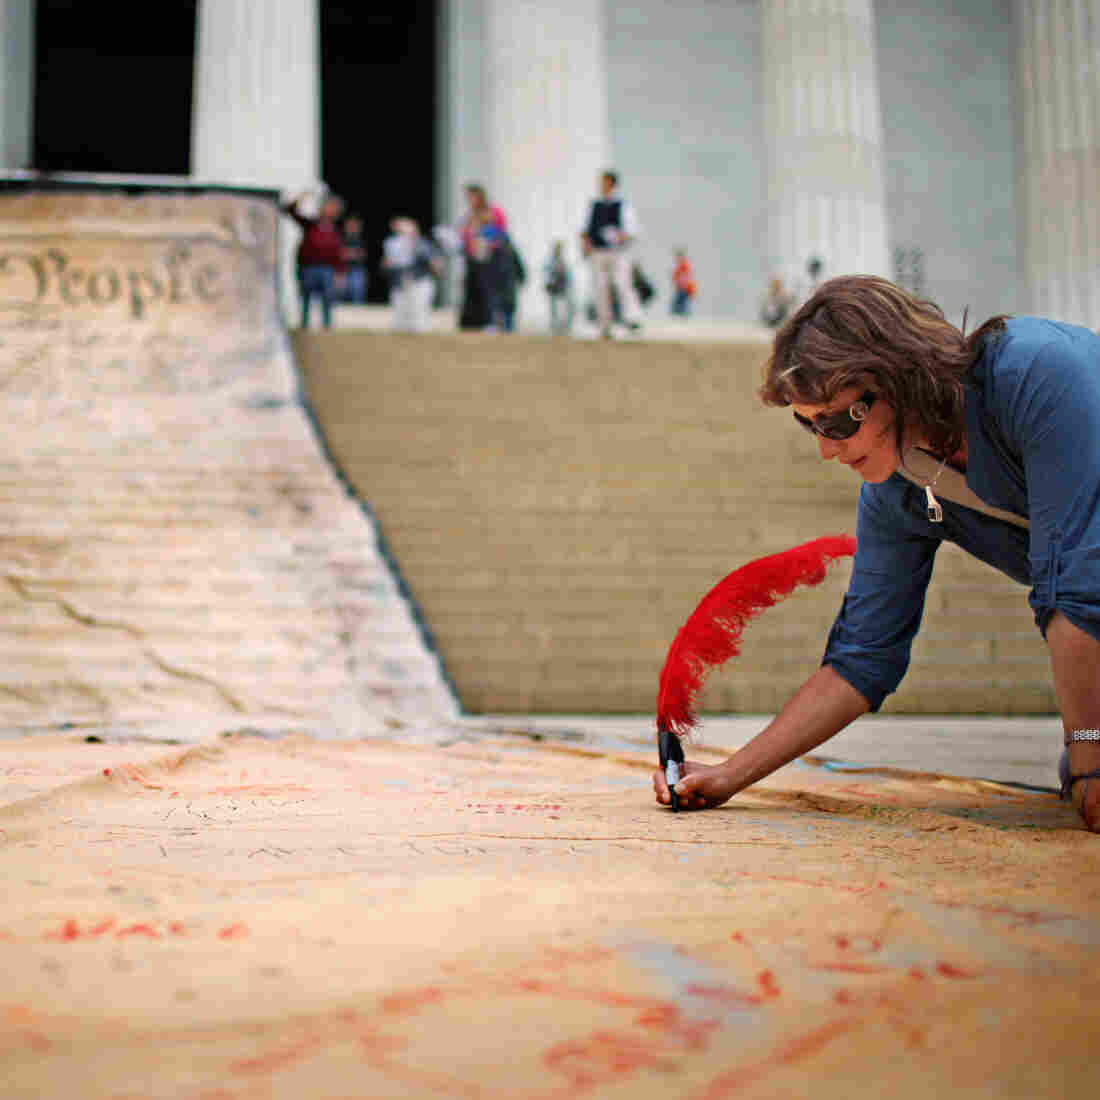 A woman signs a giant banner printed with the preamble to the U.S. Constitution during a demonstration against the Citizens United ruling in Washington in October 2010.